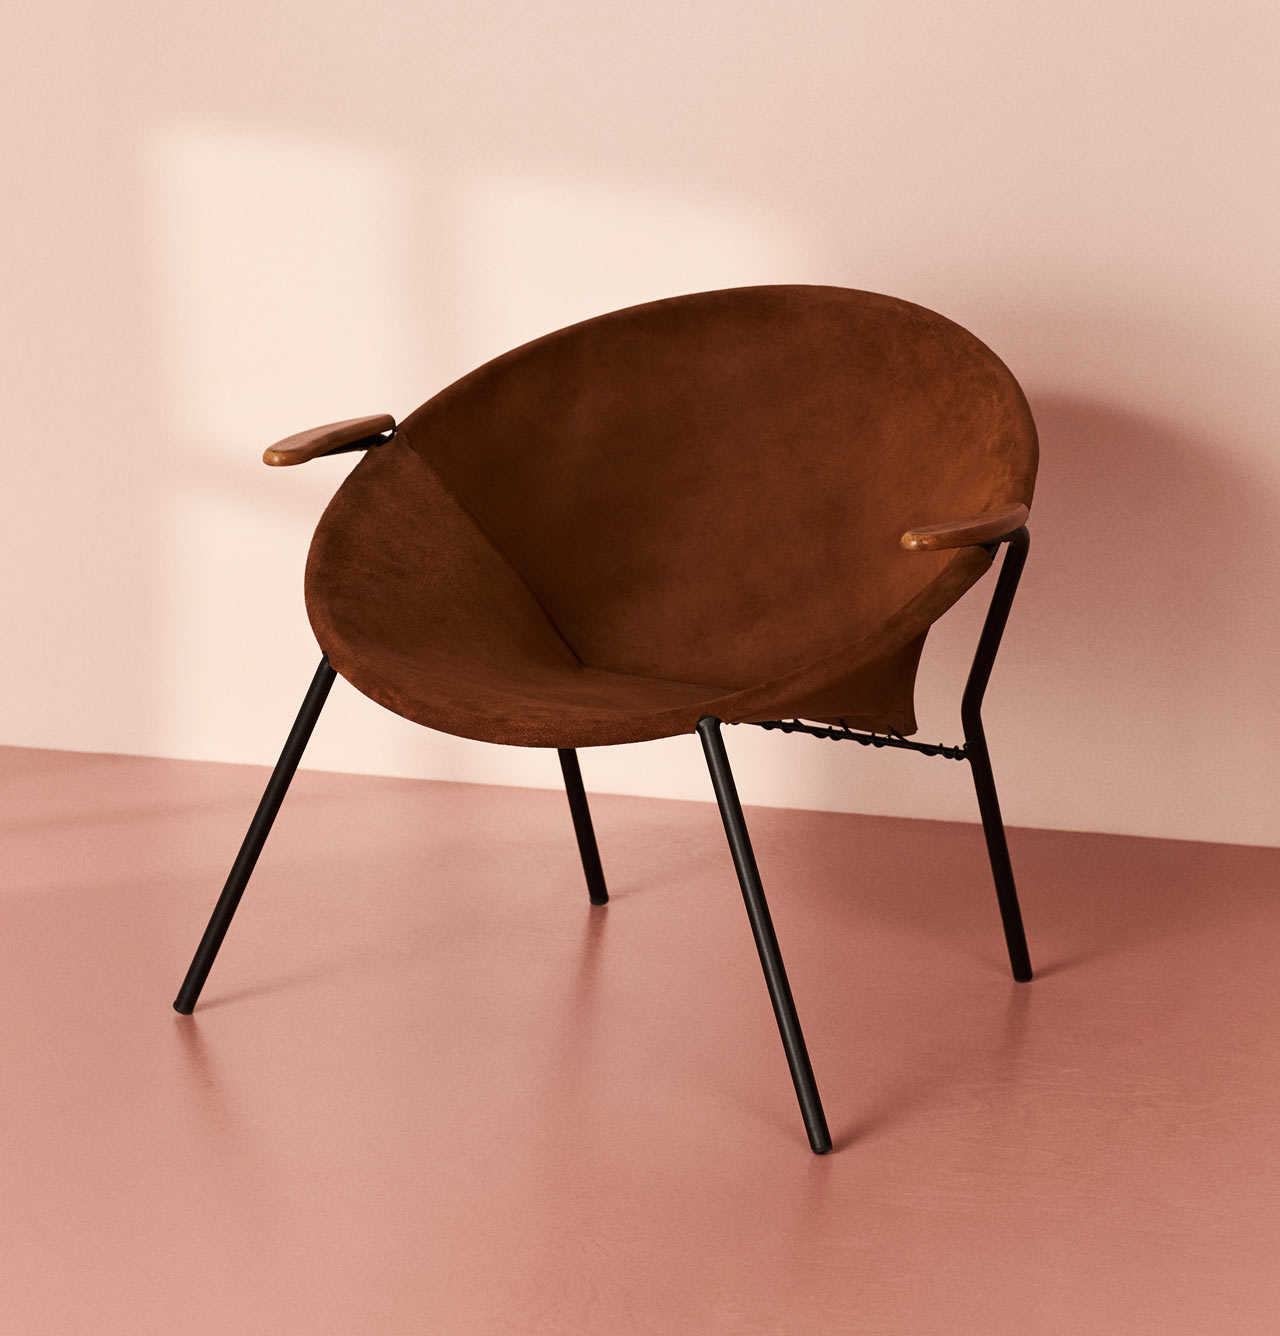 Warm Nordic Releases Hans Olsen's Iconic Balloon Lounge Chair from 1955